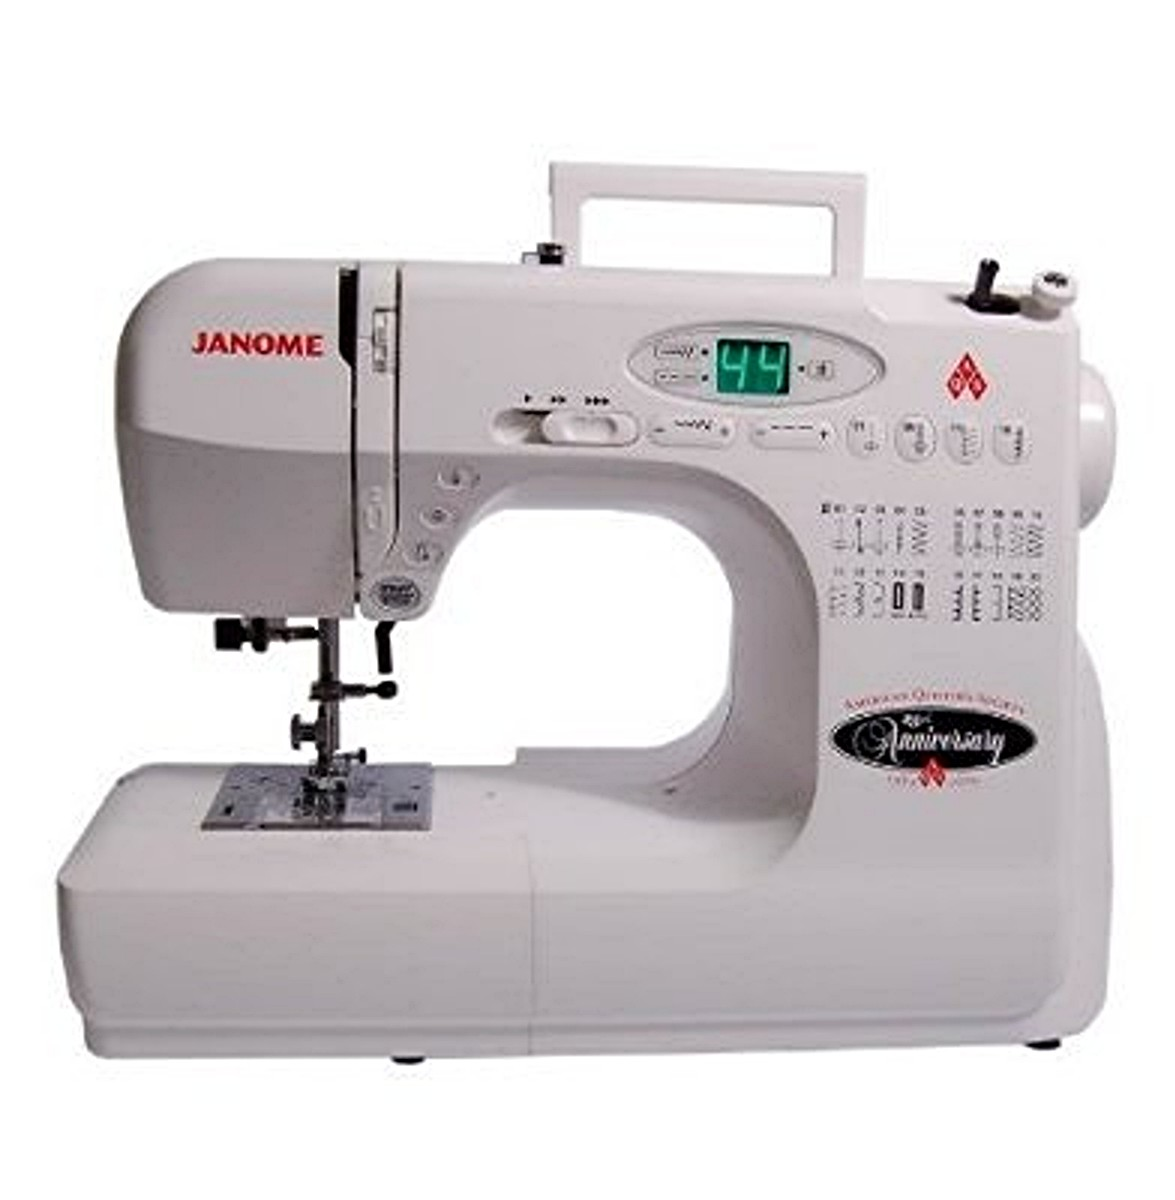 Janome aqs sewing machine review